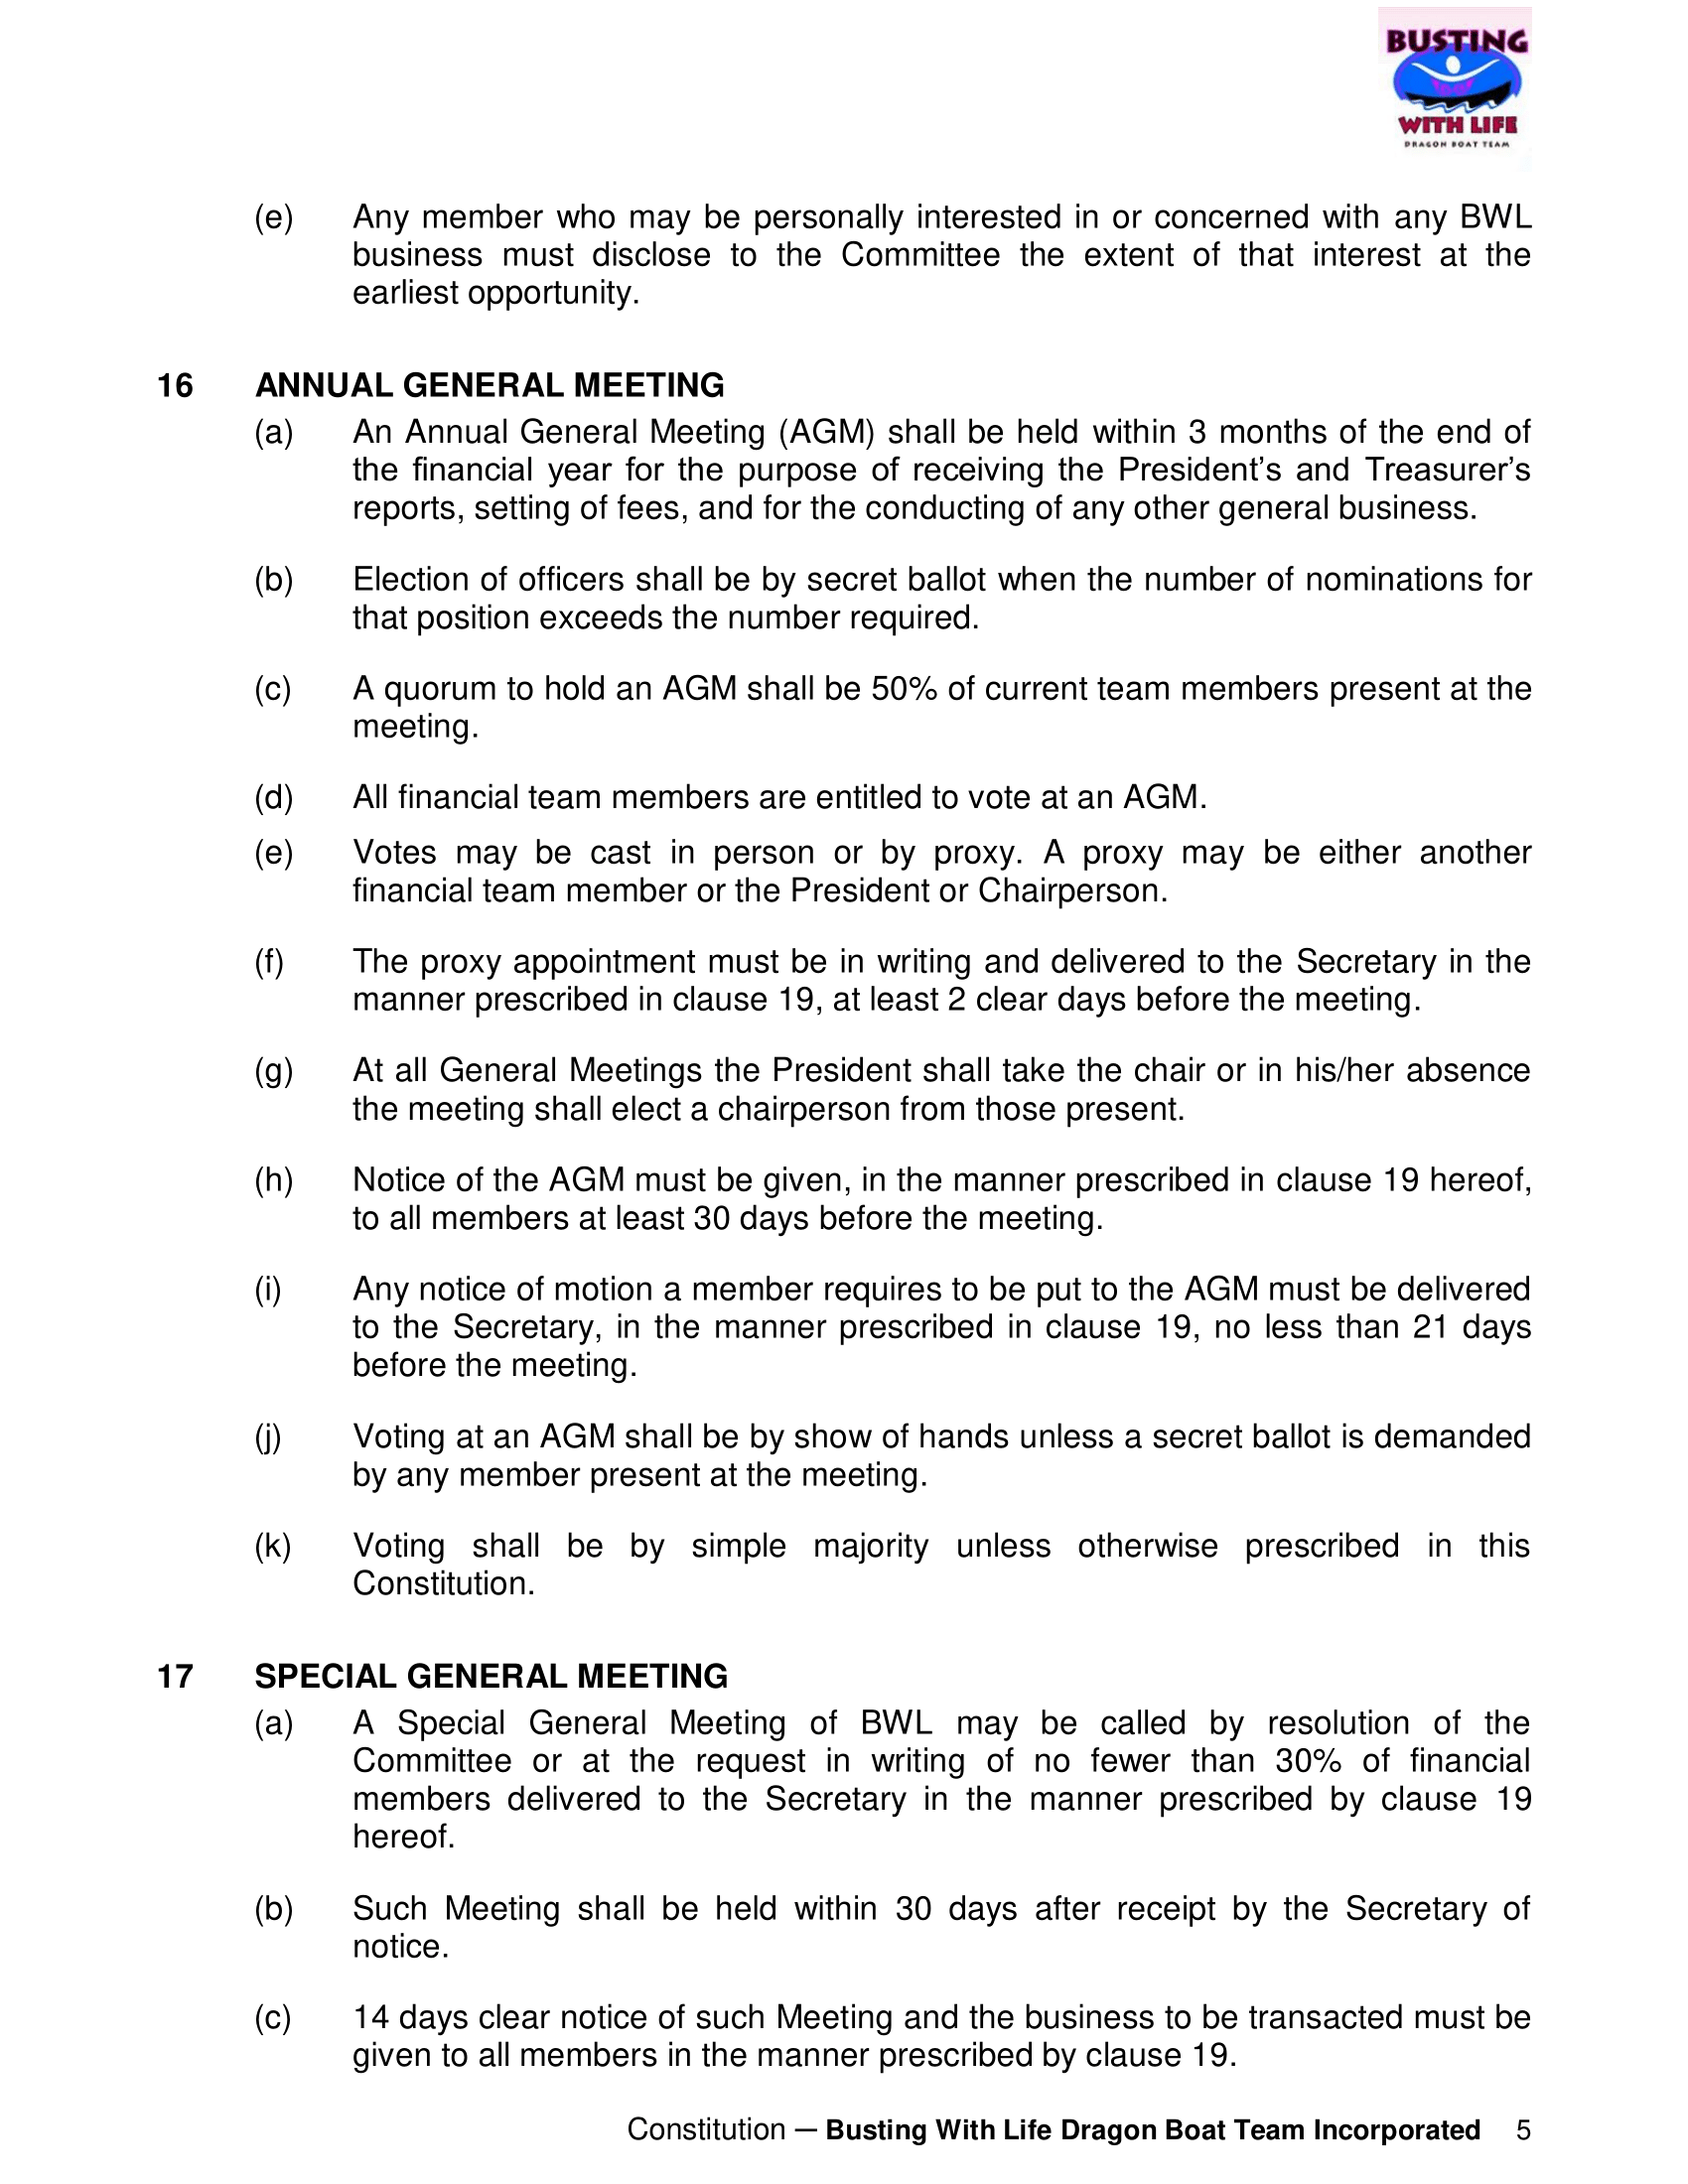 BWL Constitution-5.png